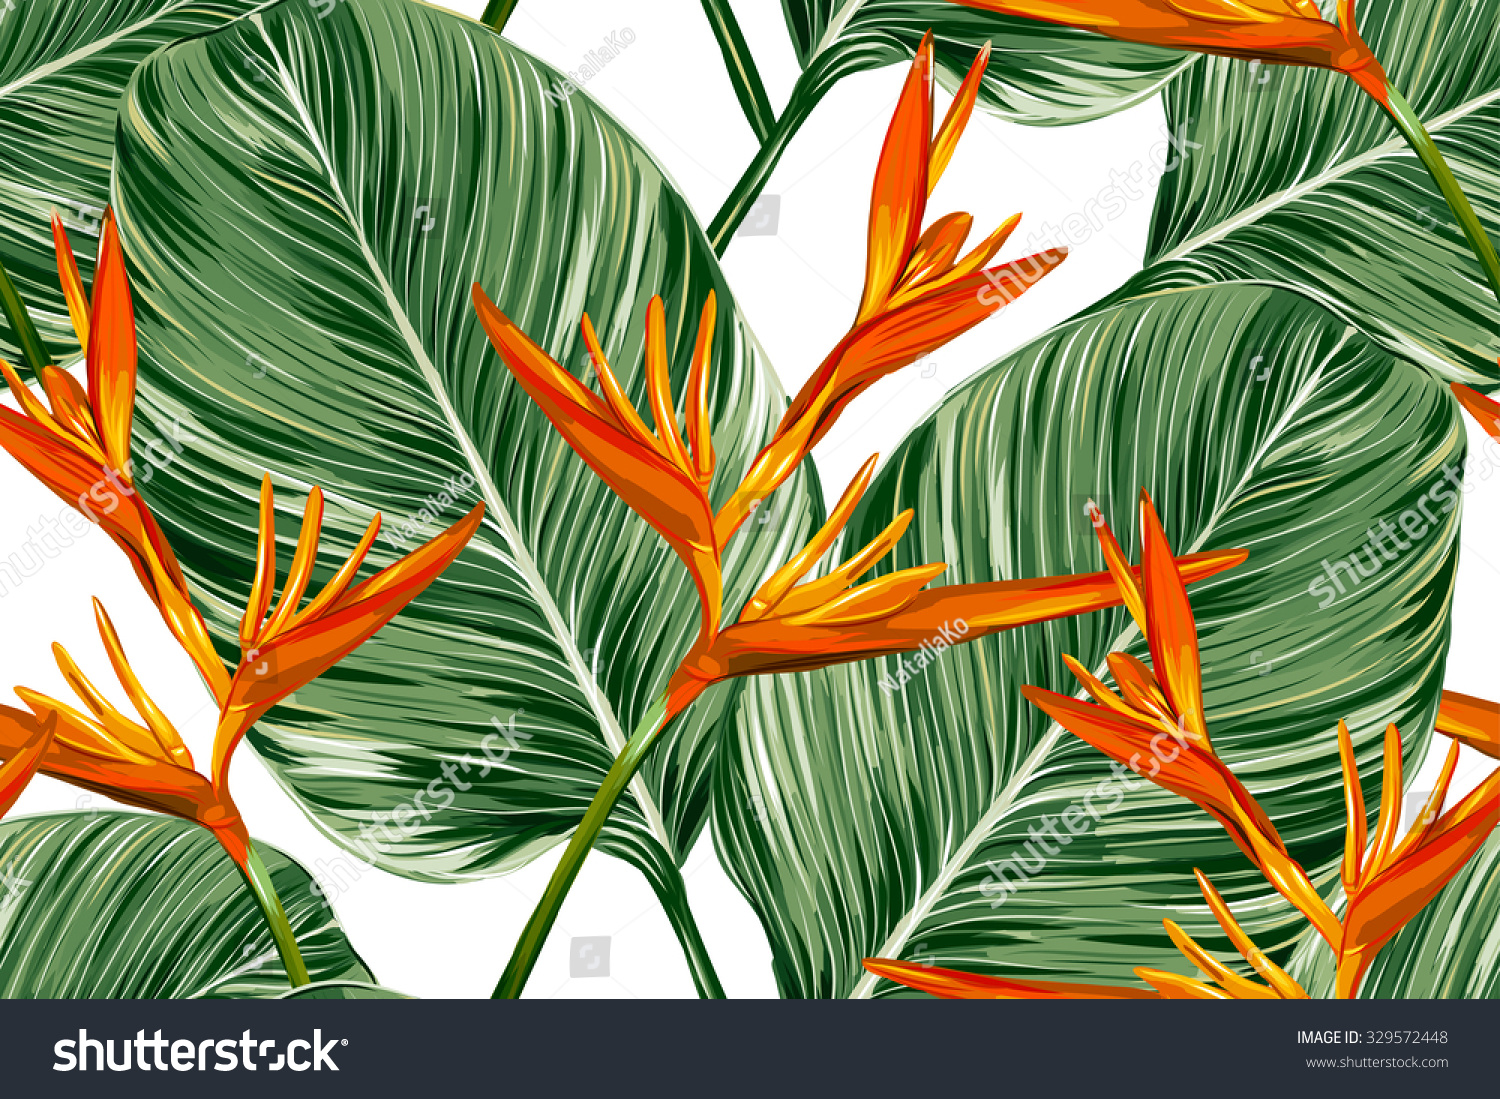 tropical flowers palm leaves bird paradise stock vector 329572448 shutterstock. Black Bedroom Furniture Sets. Home Design Ideas